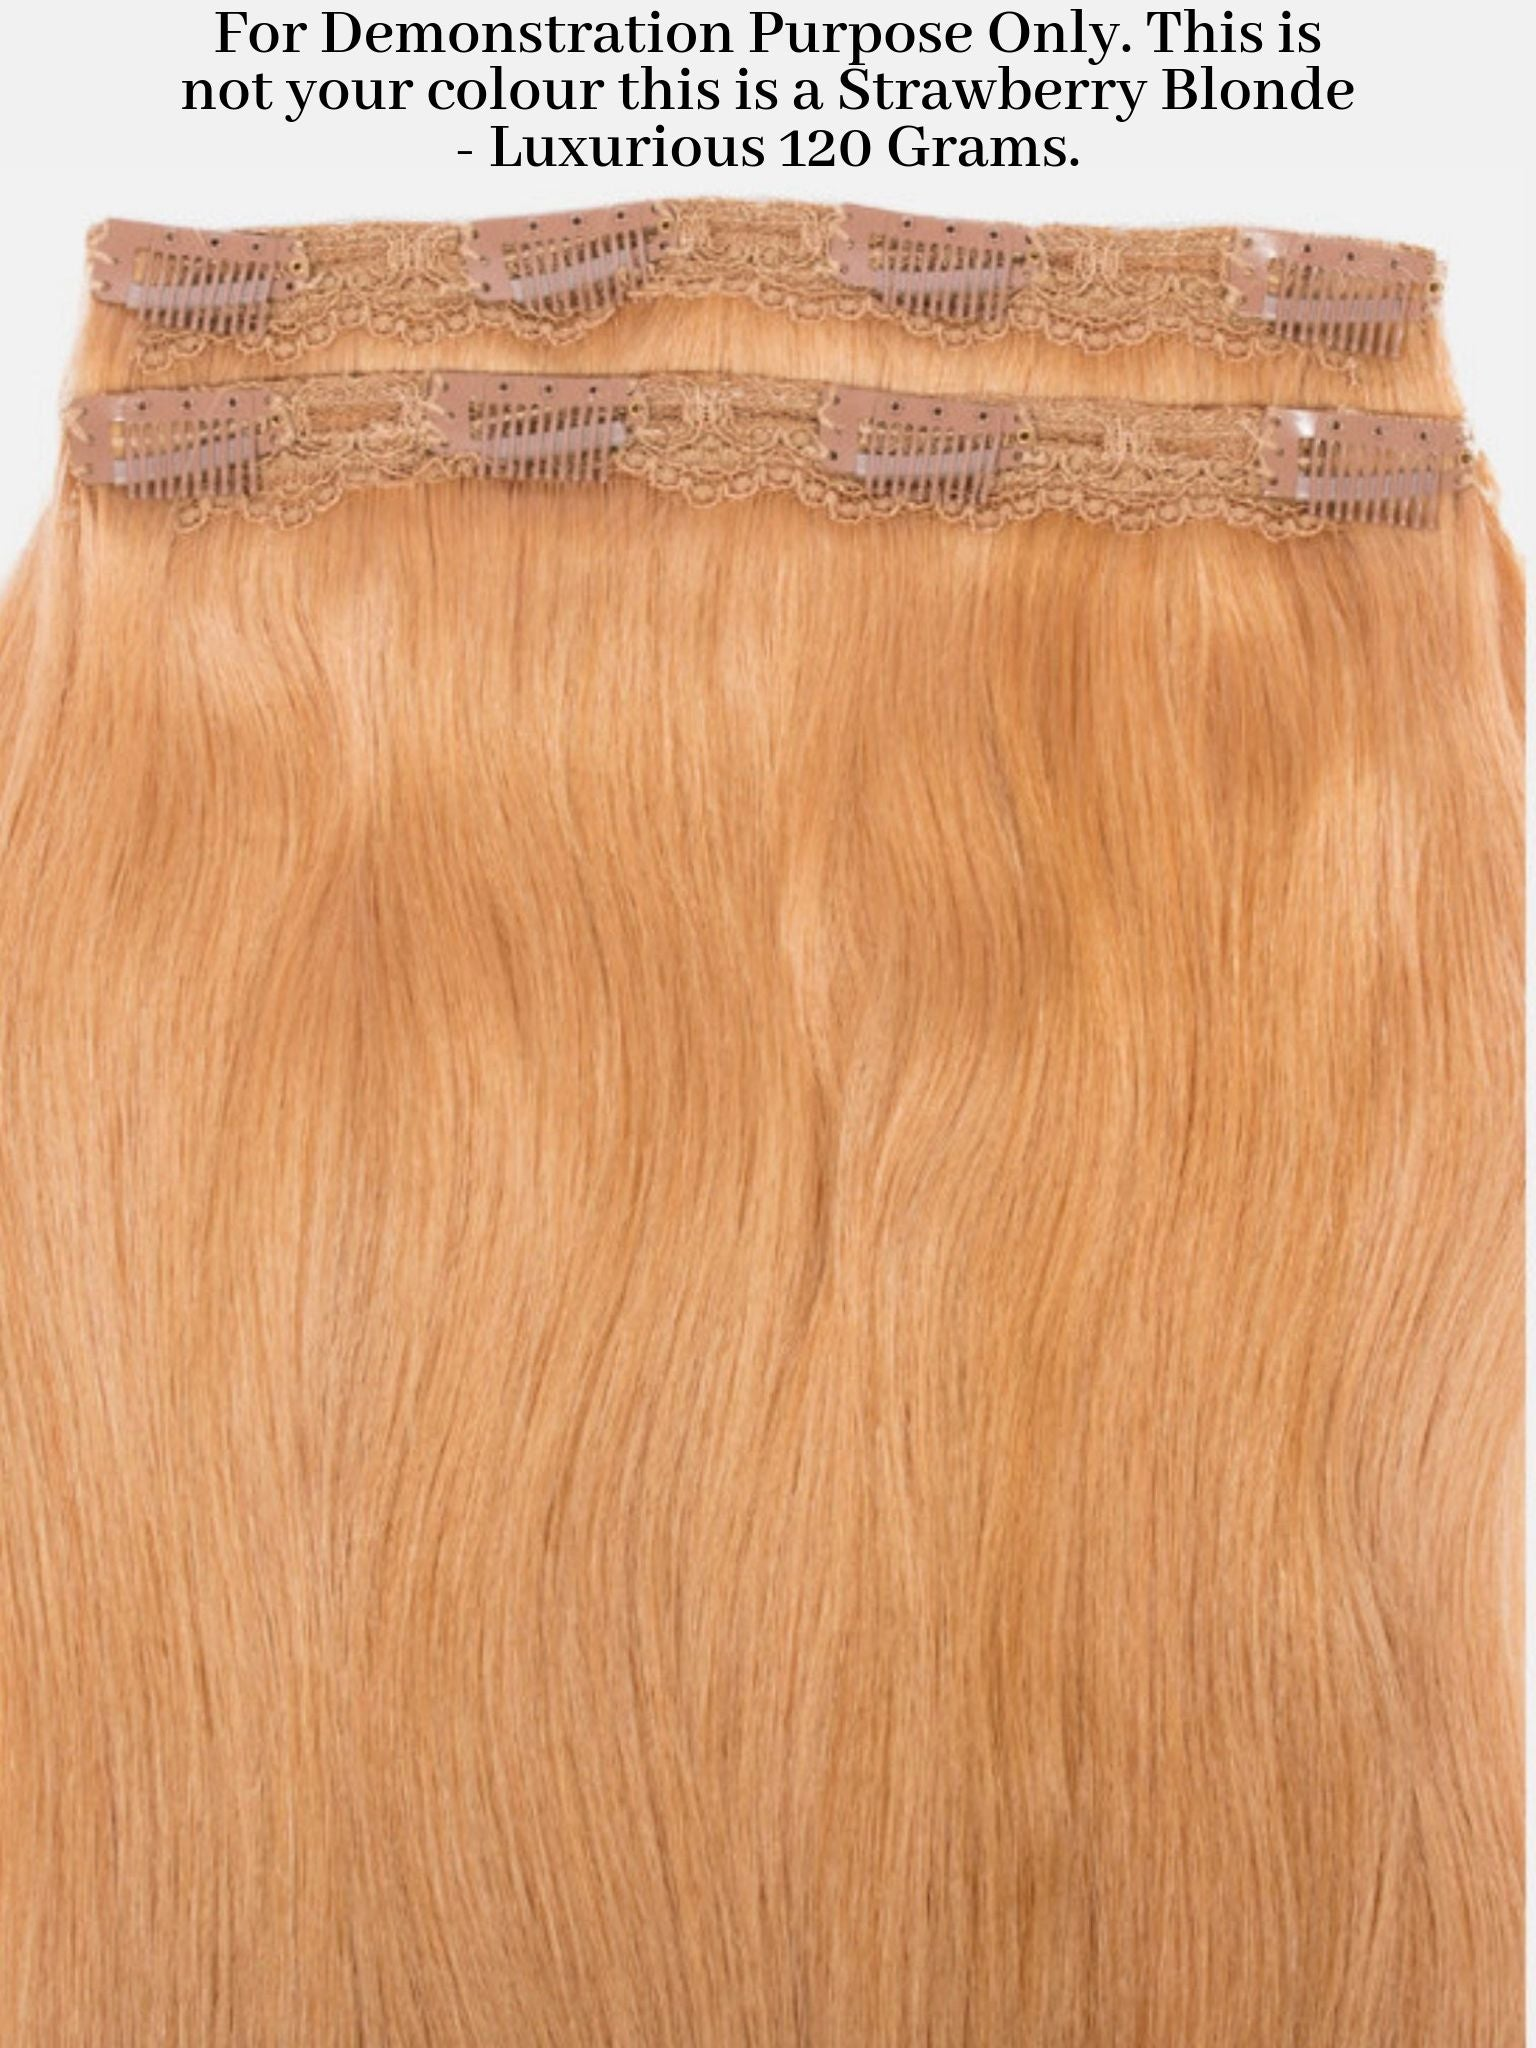 Clip-In Hair Extensions Bleach Blonde | Luxurious 100 Grams